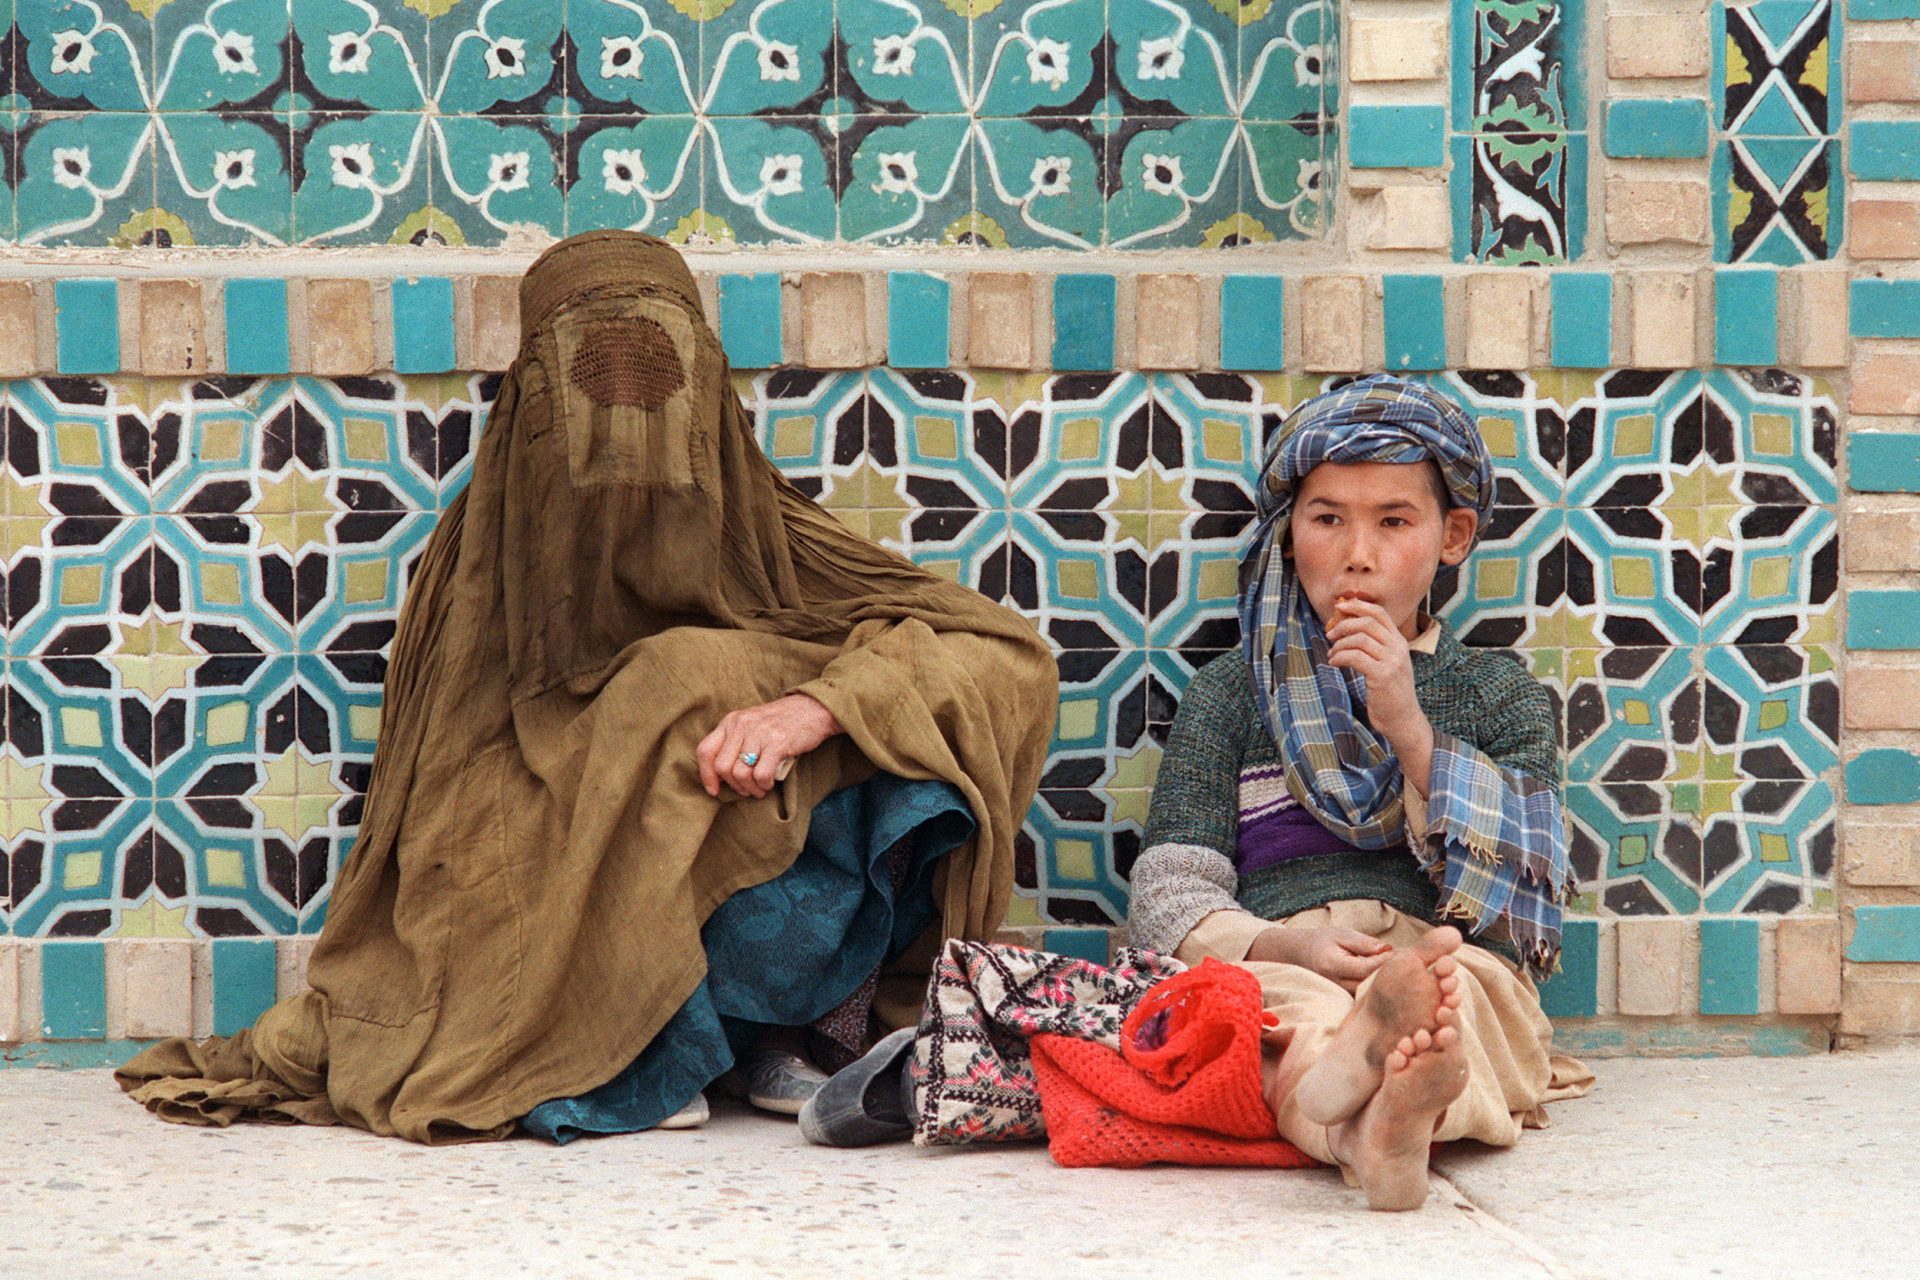 The harshest Taliban laws and punishments